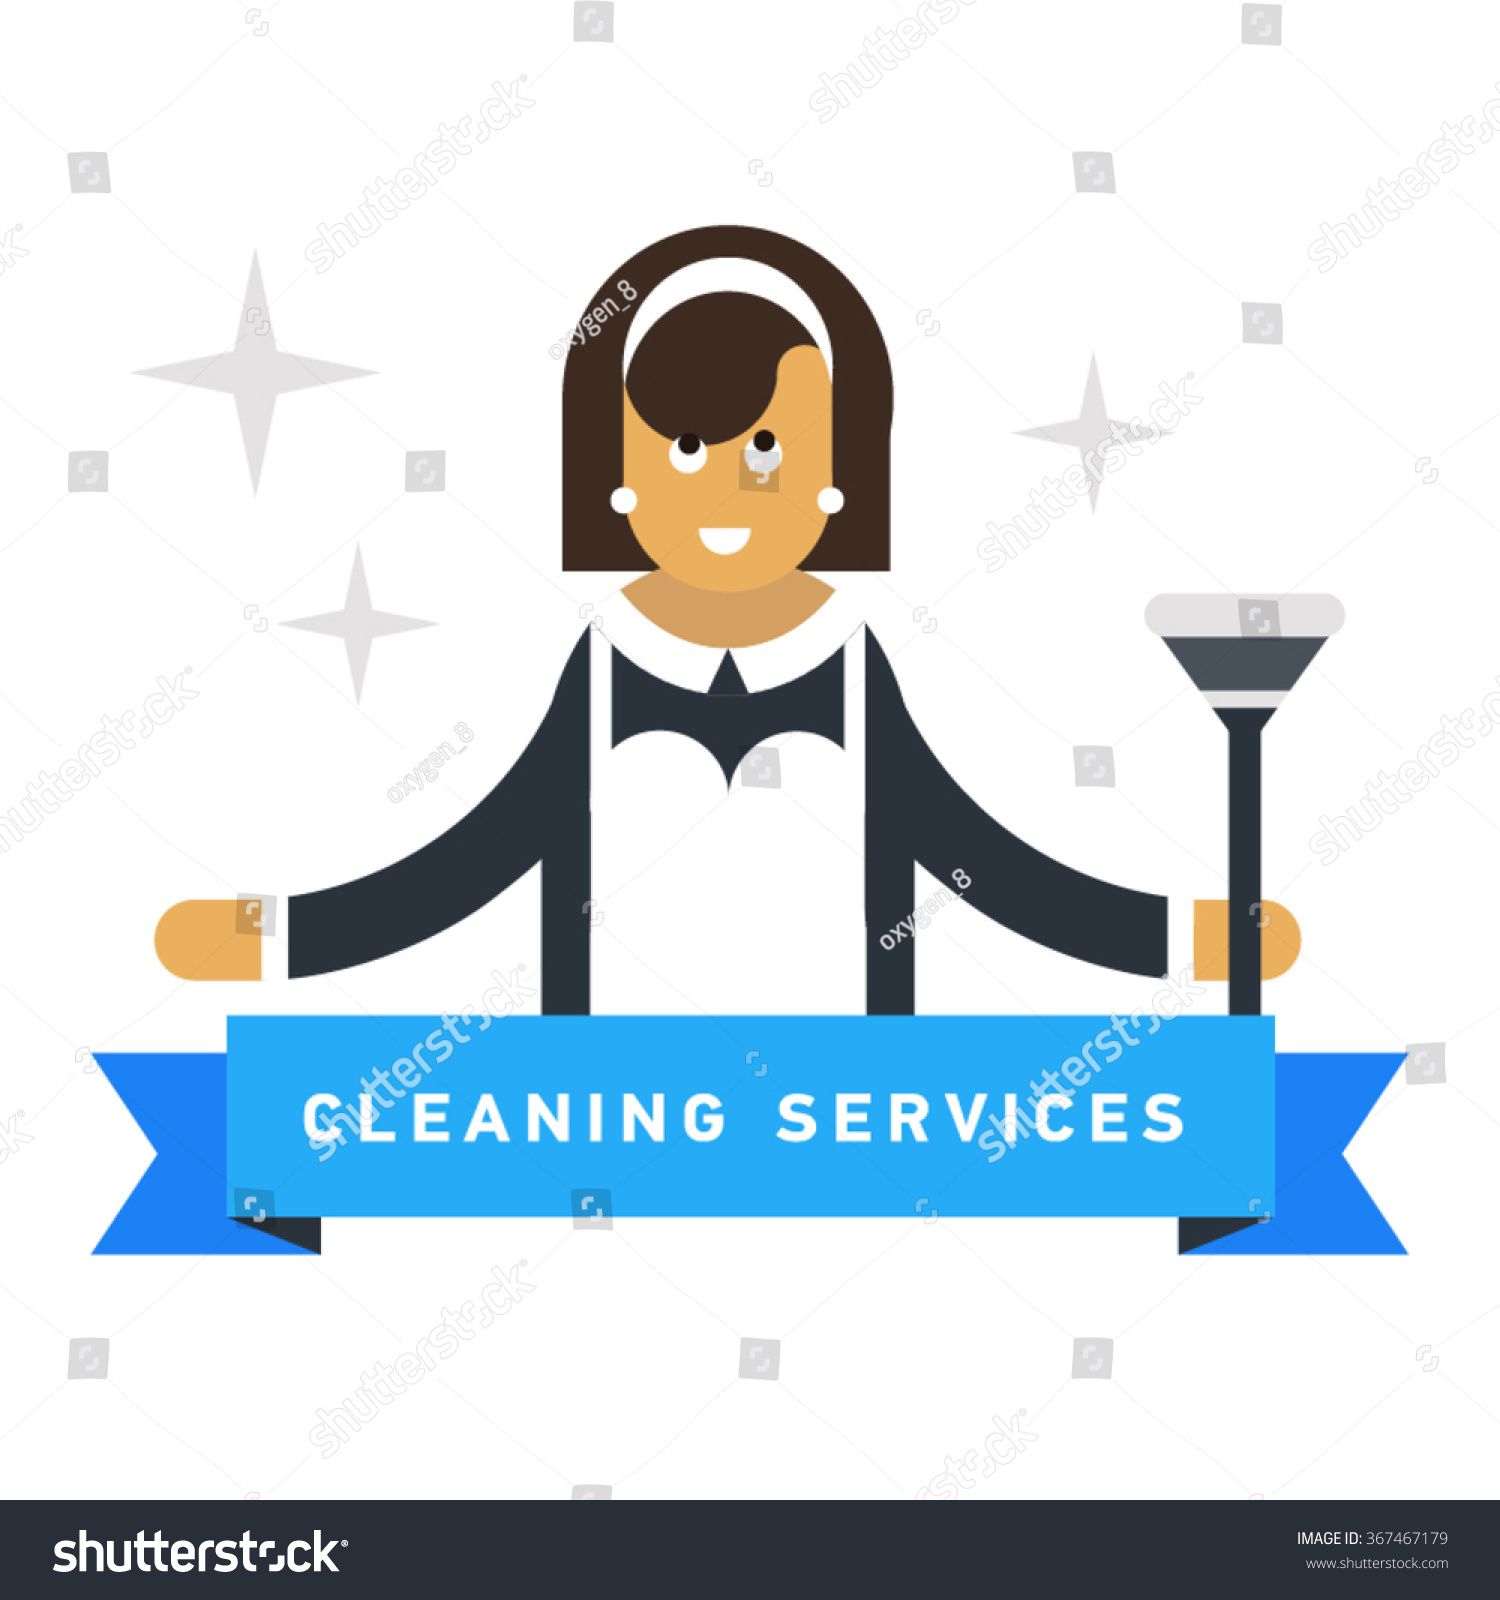 cleaning service advertisement cleaning w classic stock vector cleaning service advertisement cleaning w in classic maid dress cartoon flat vector illustration housekeeper